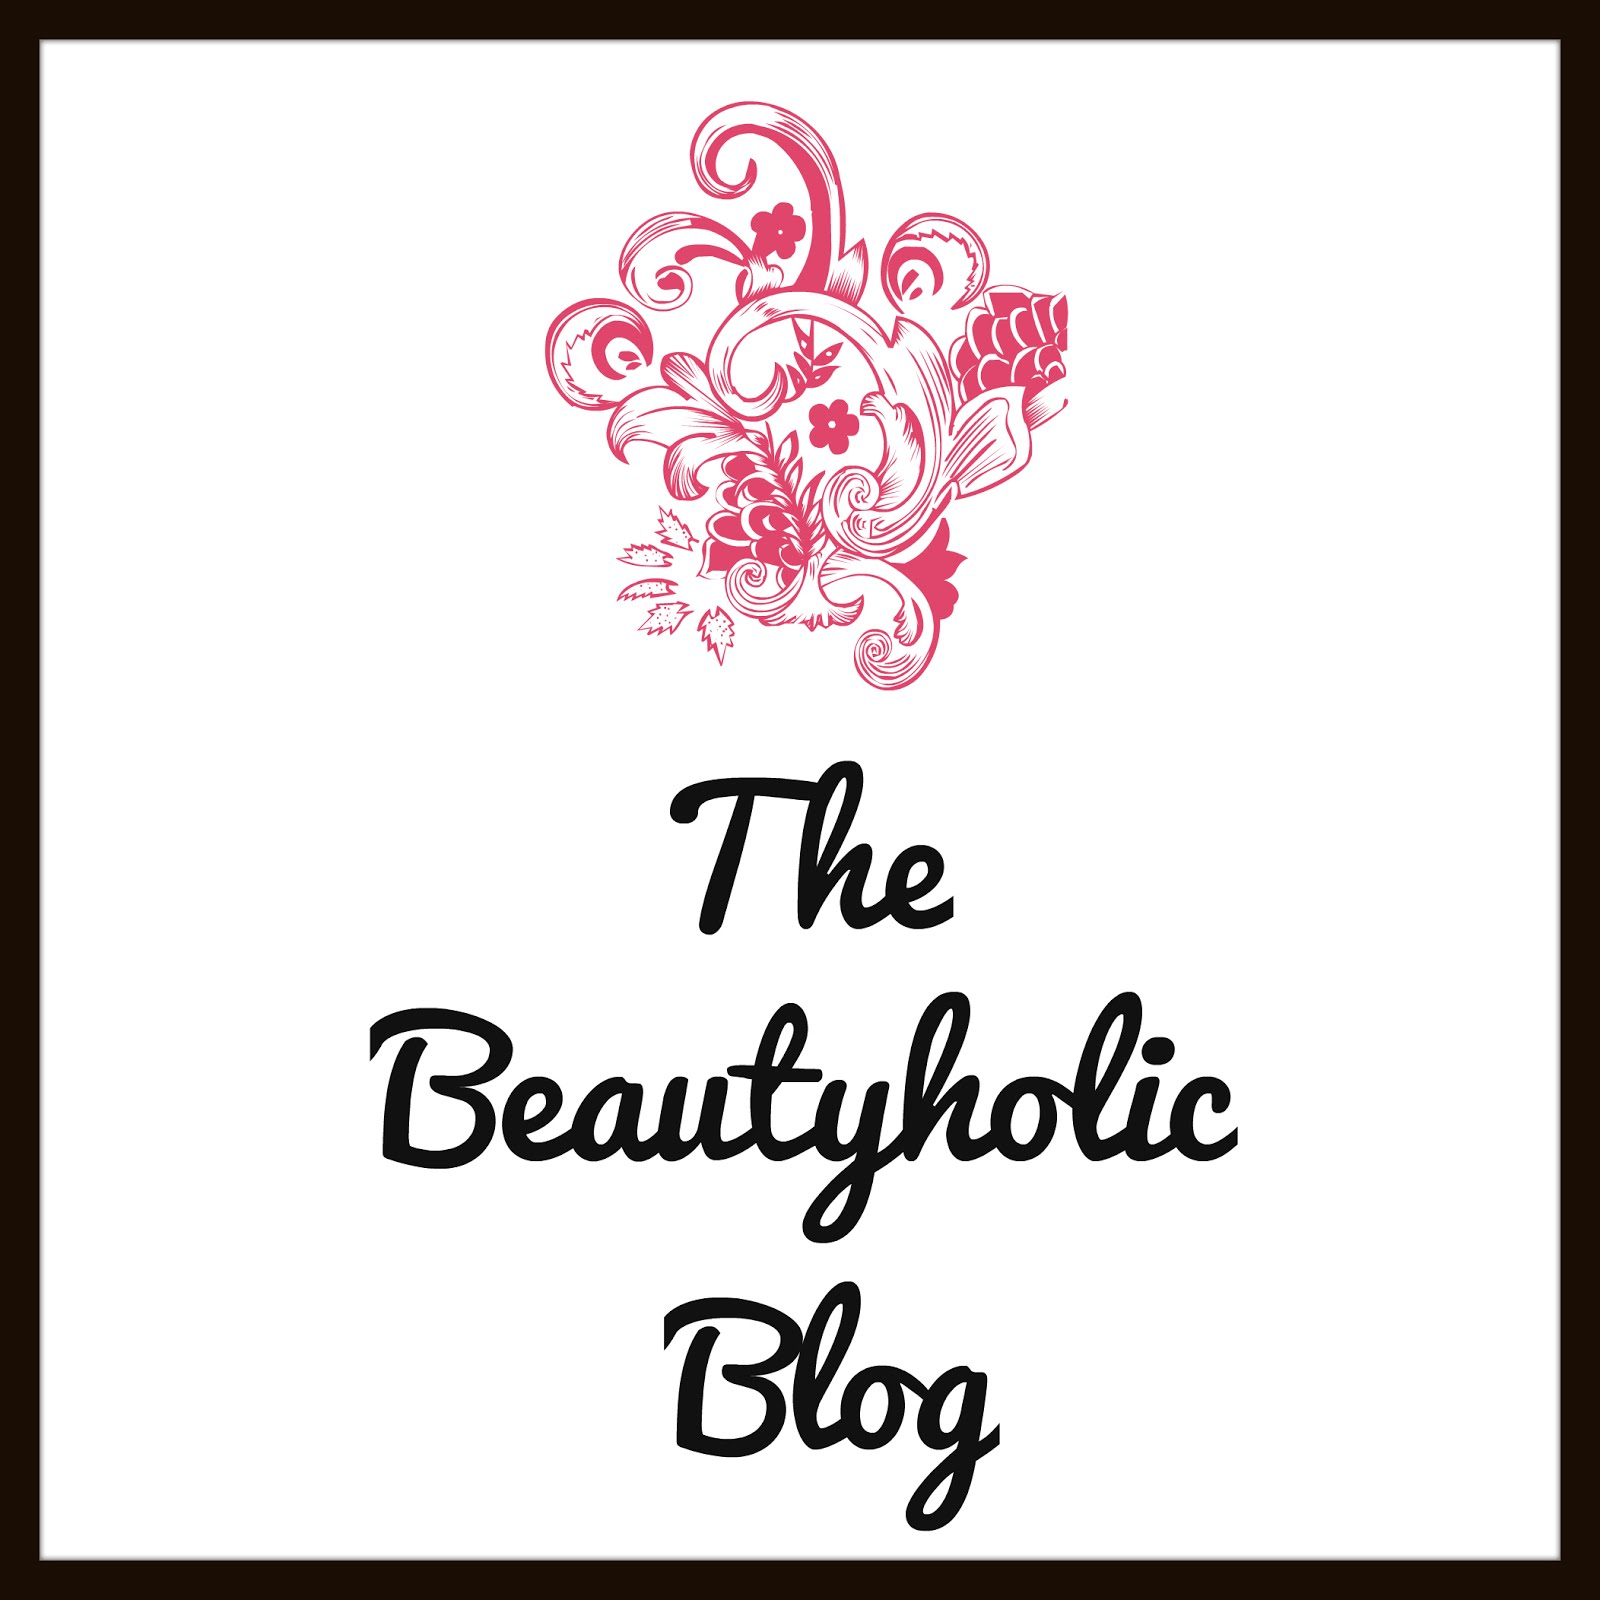 Check out my another blog!